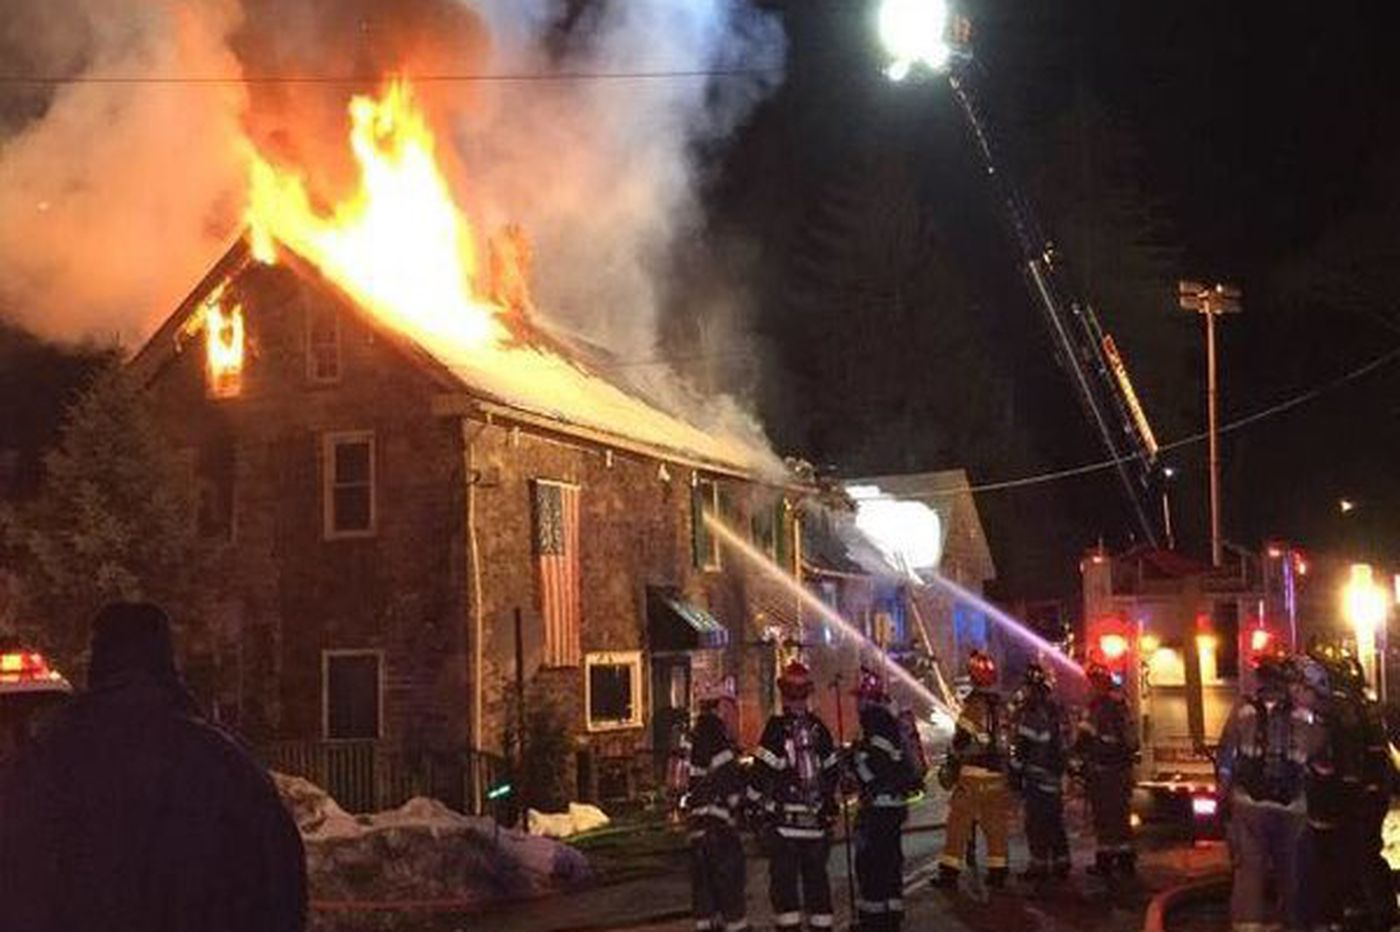 Fire that destroyed historic inn not suspicious